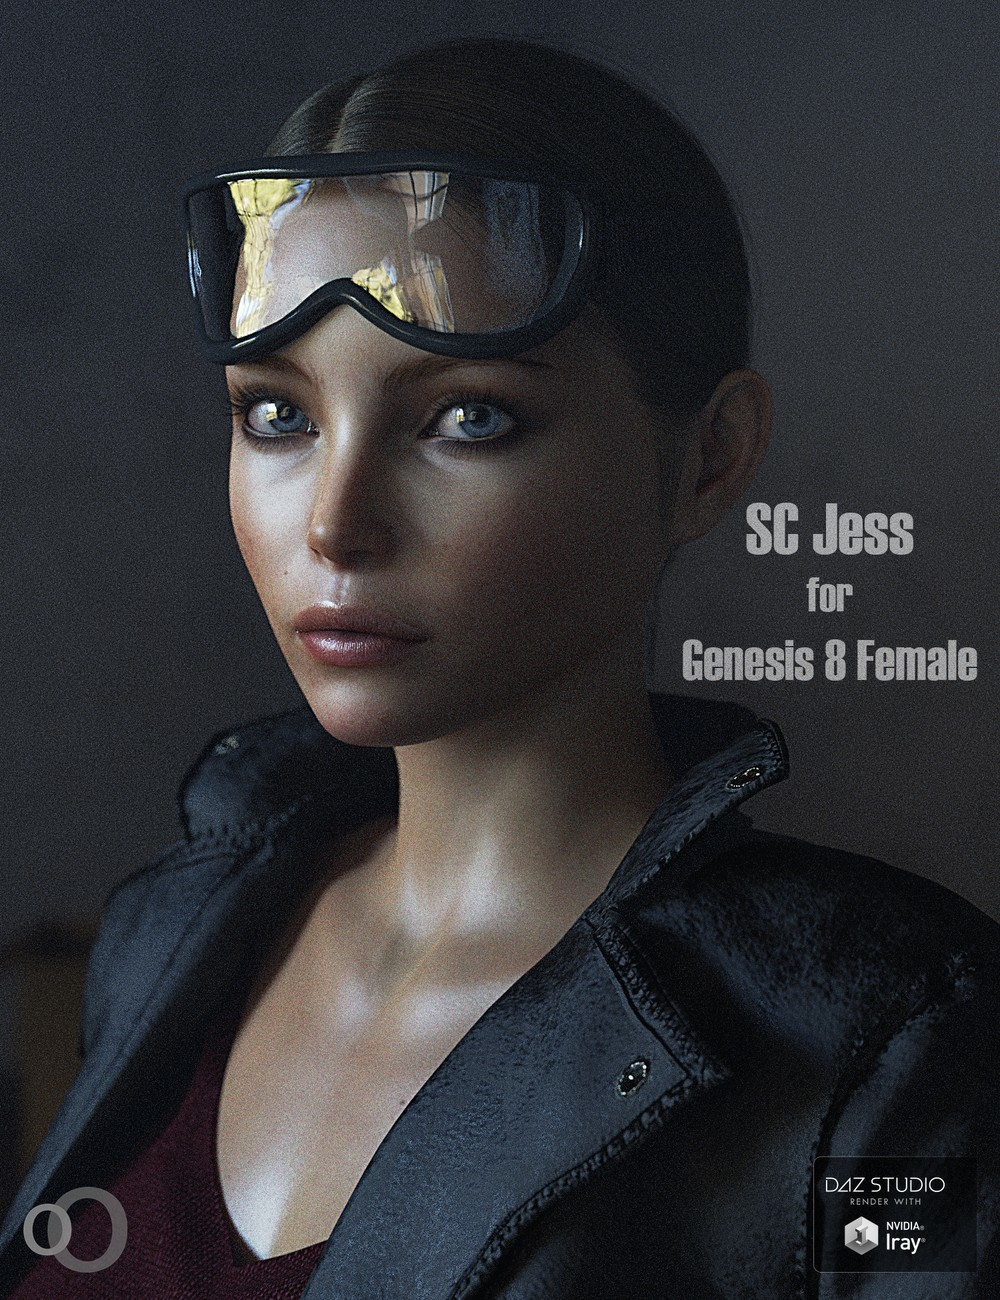 SC Jess for Genesis 8 Female